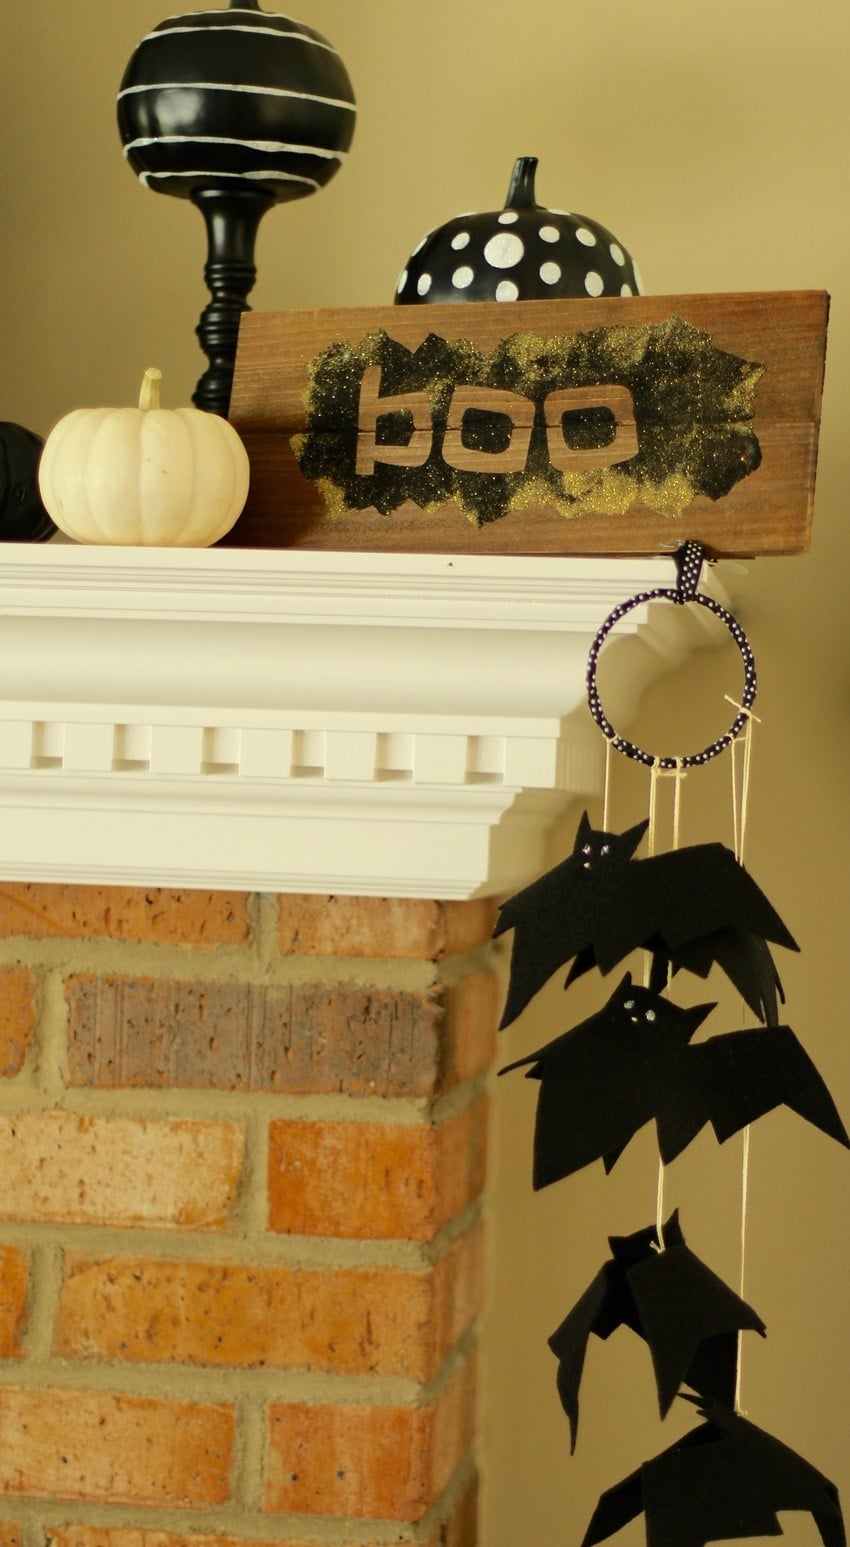 Halloween Craft Tutorial Bat Mobile - Bat Mobile Mantal